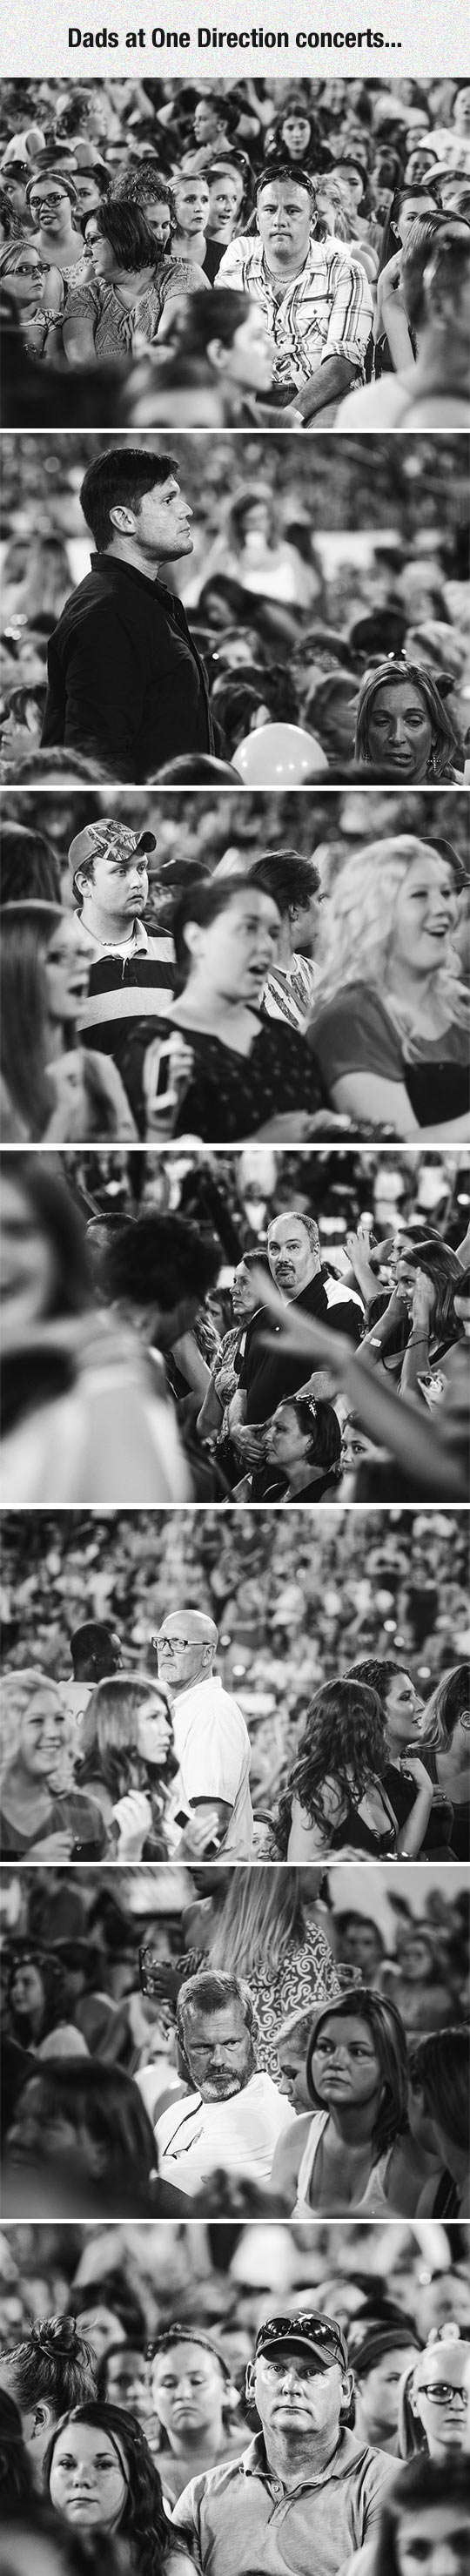 funny-dads-faces-One-Direction-concert